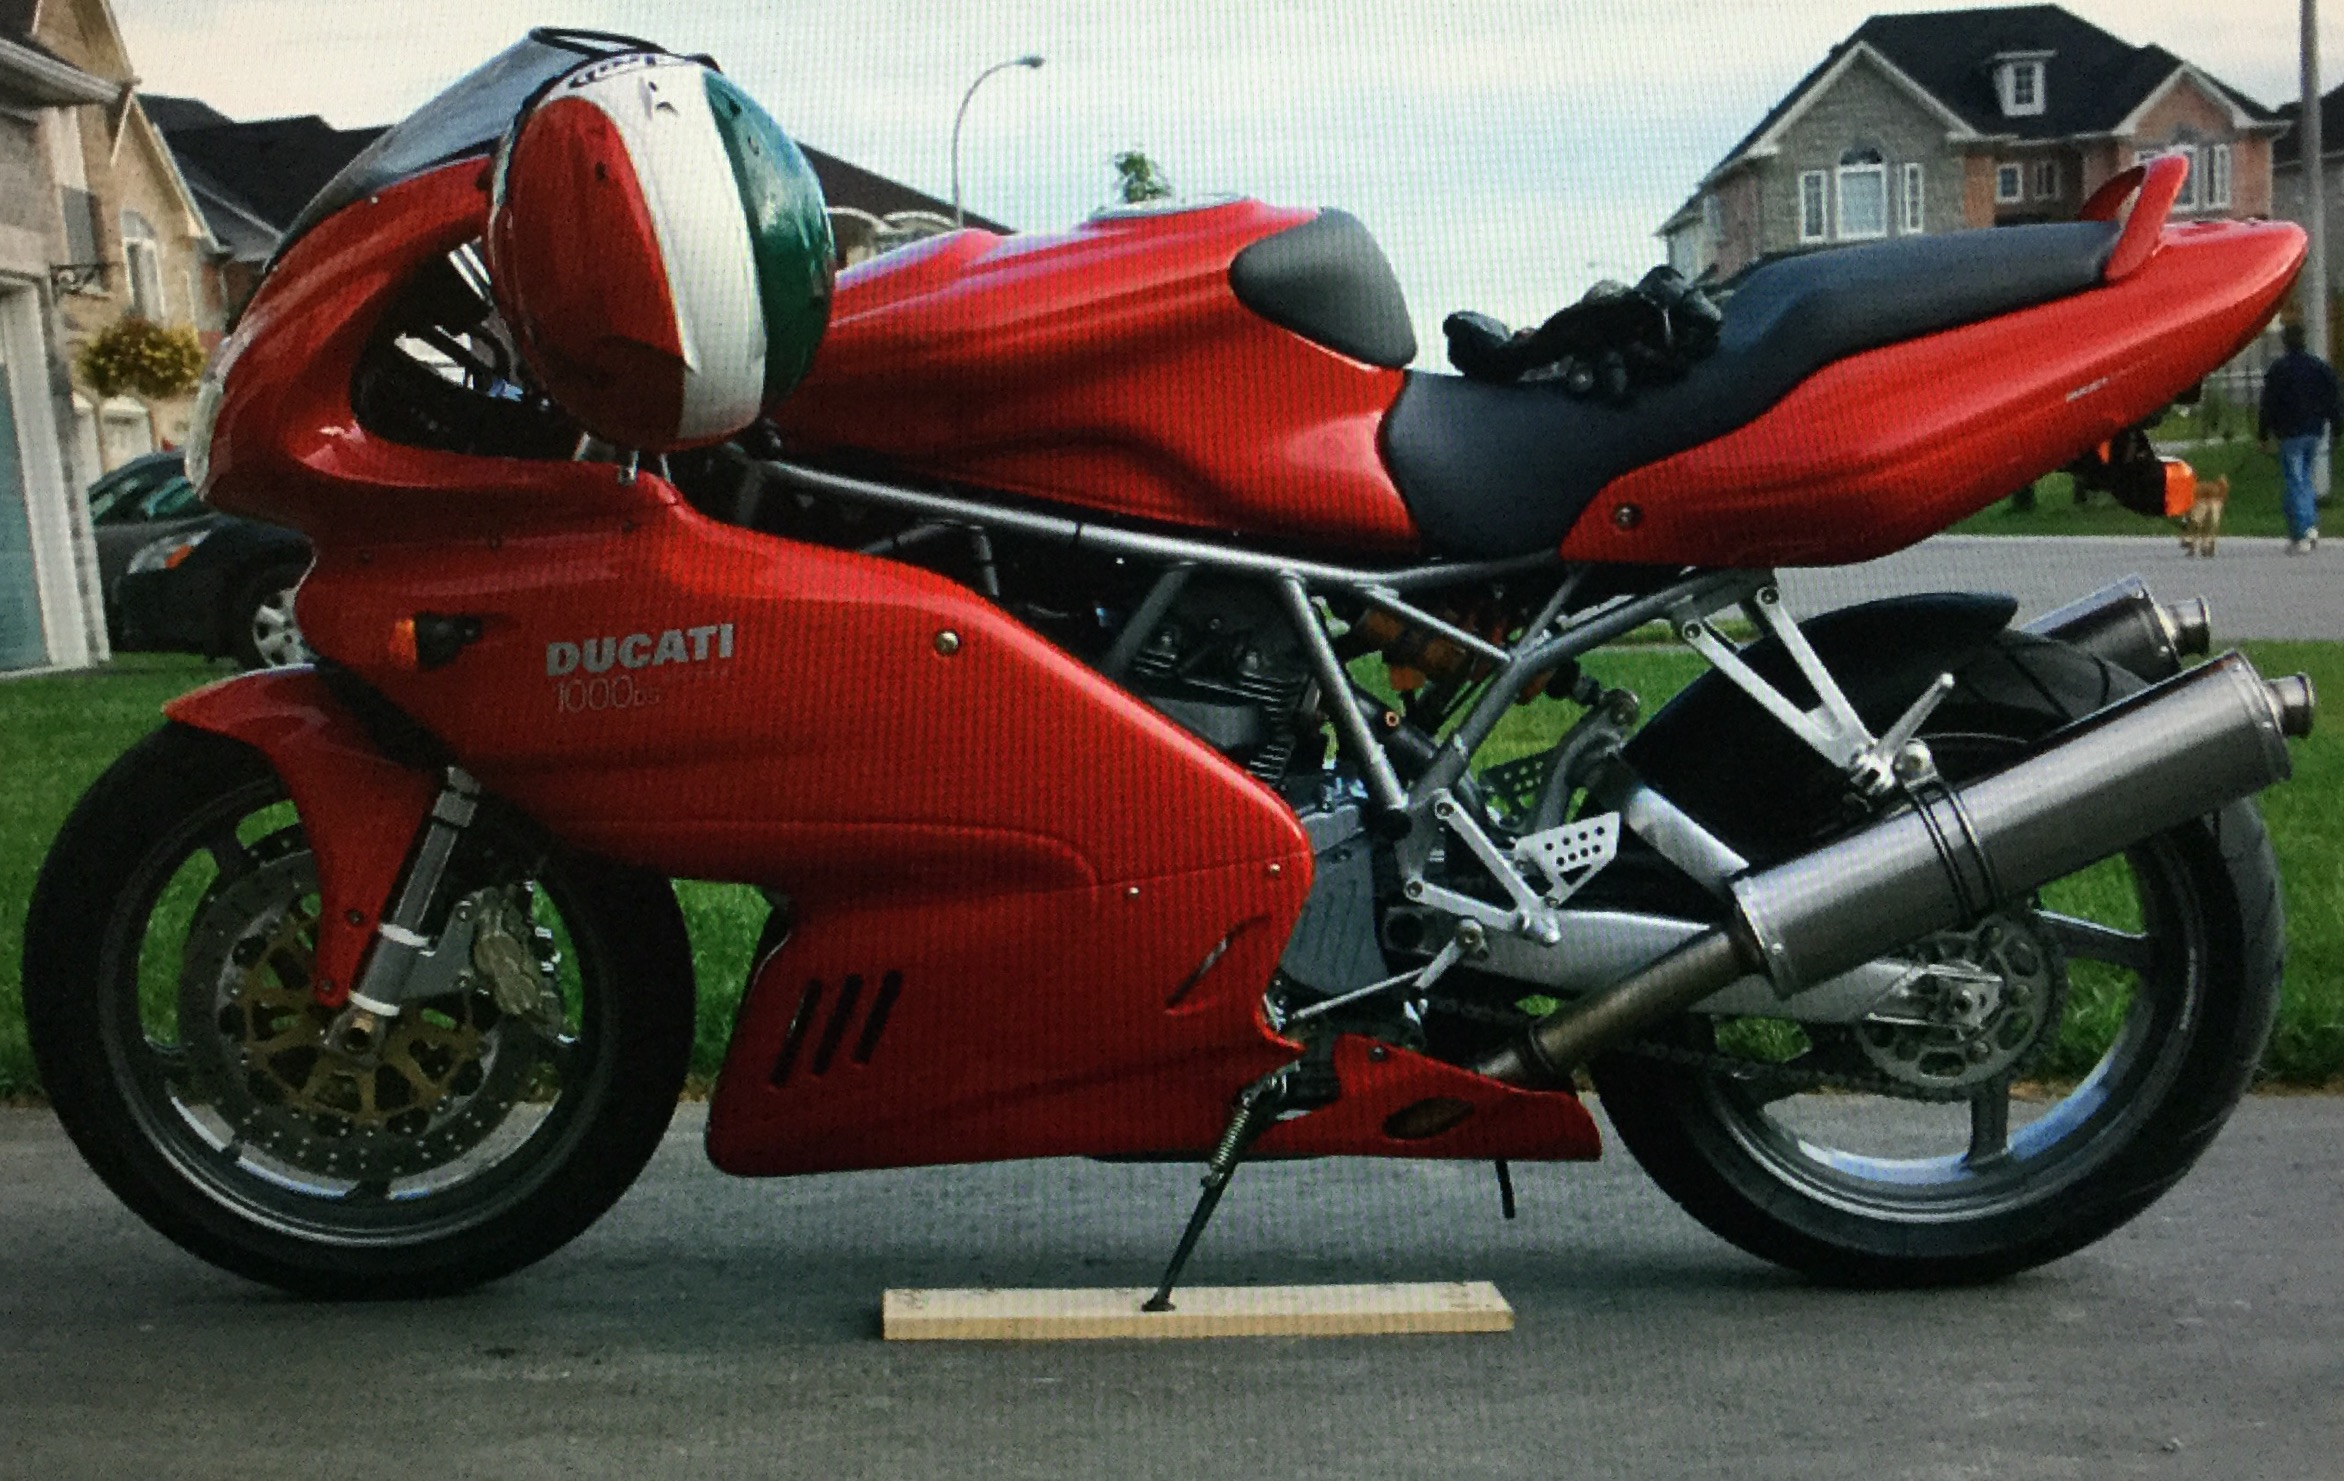 Super sport 1000ds service manual error on fuel lines at tank - Ducati.ms -  The Ultimate Ducati Forum